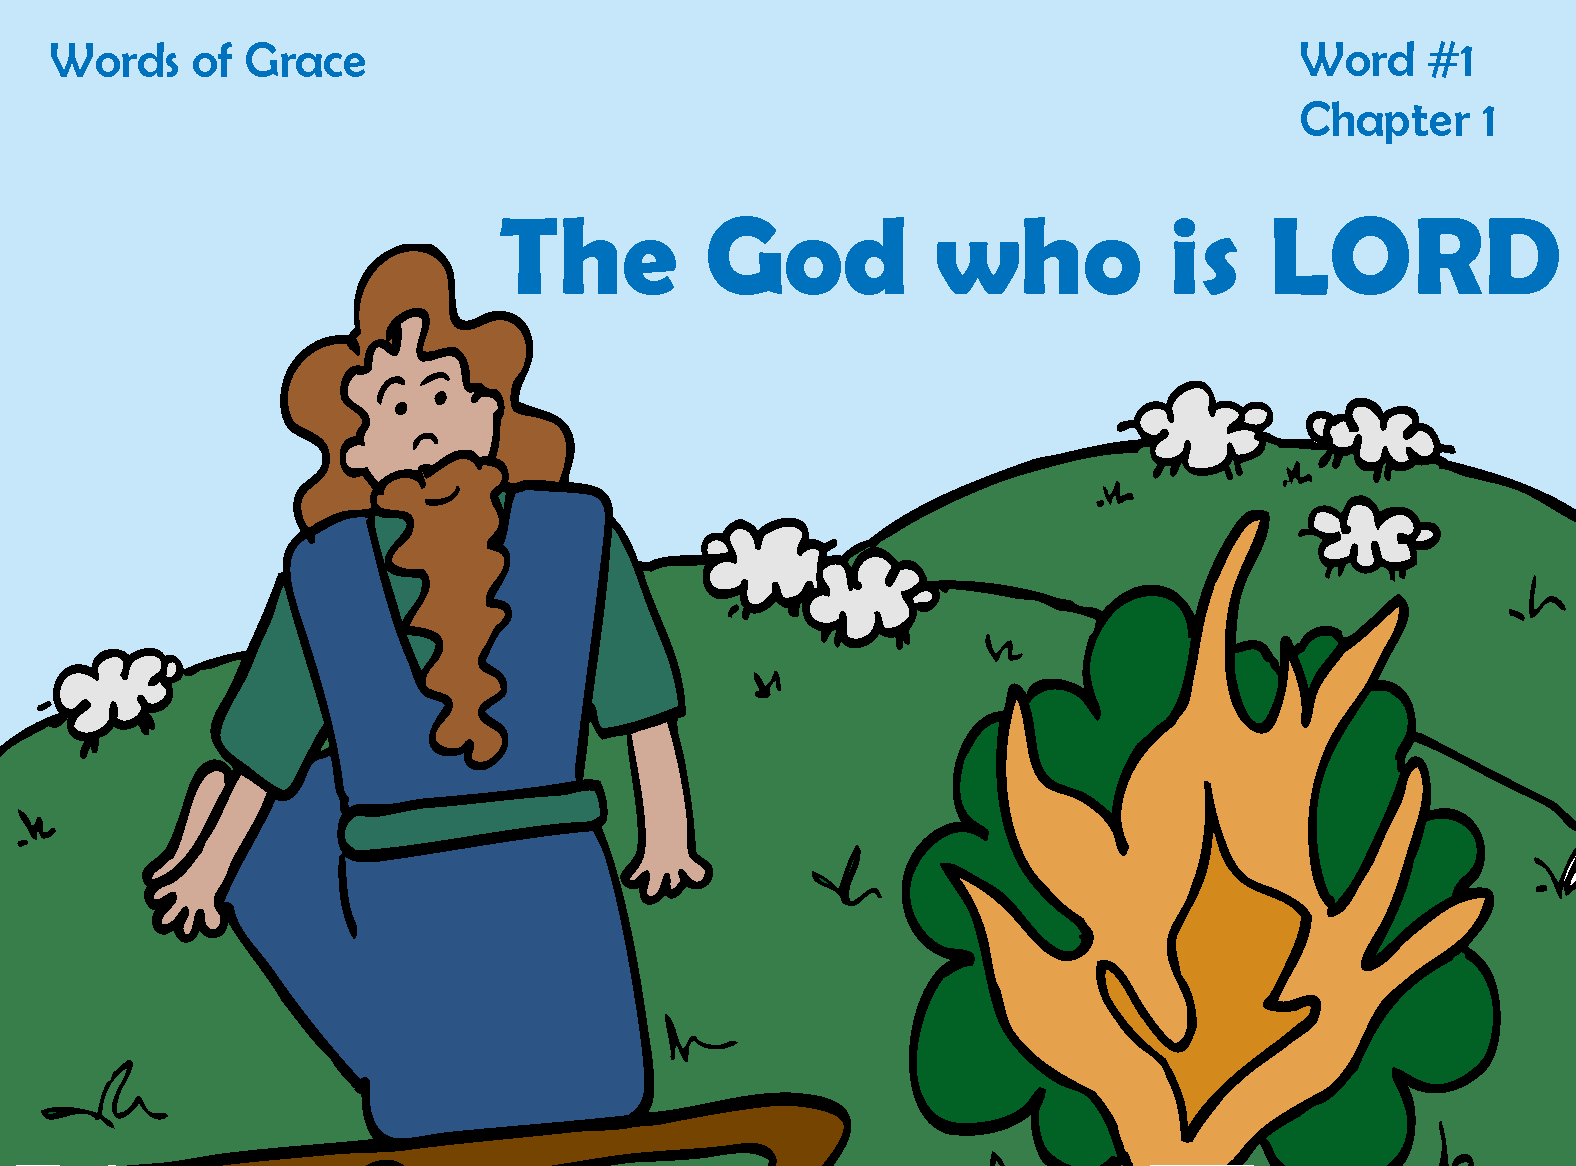 Words of Grace: Lord (PREMIUM!)